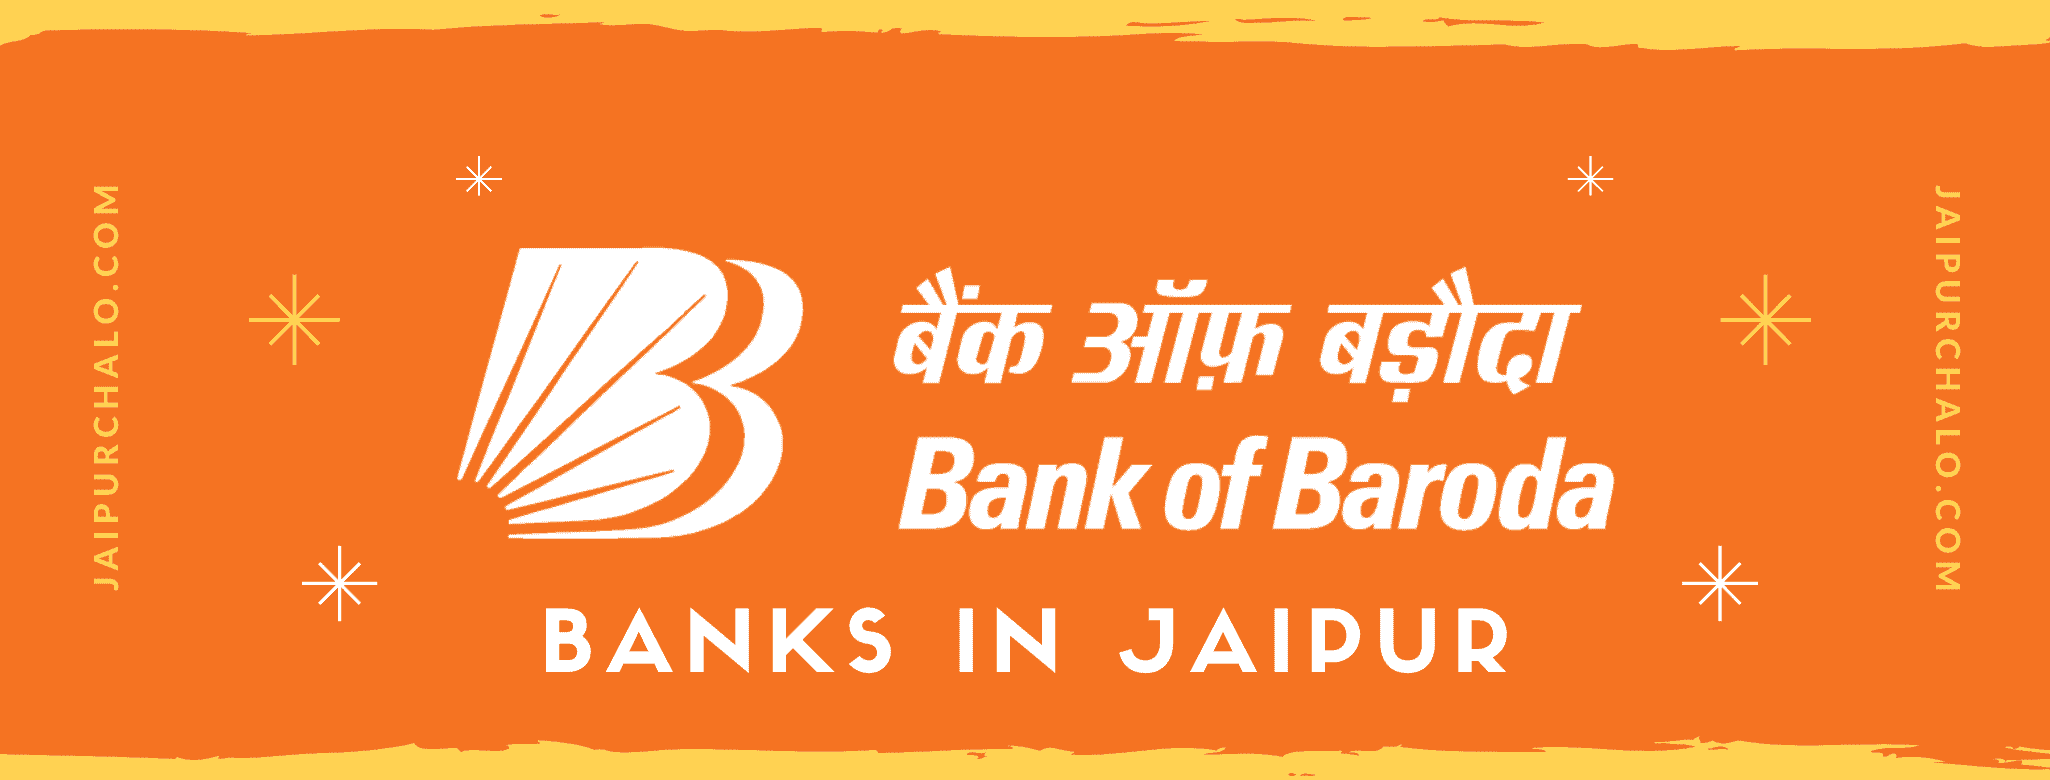 Bank of baroda in jaipur